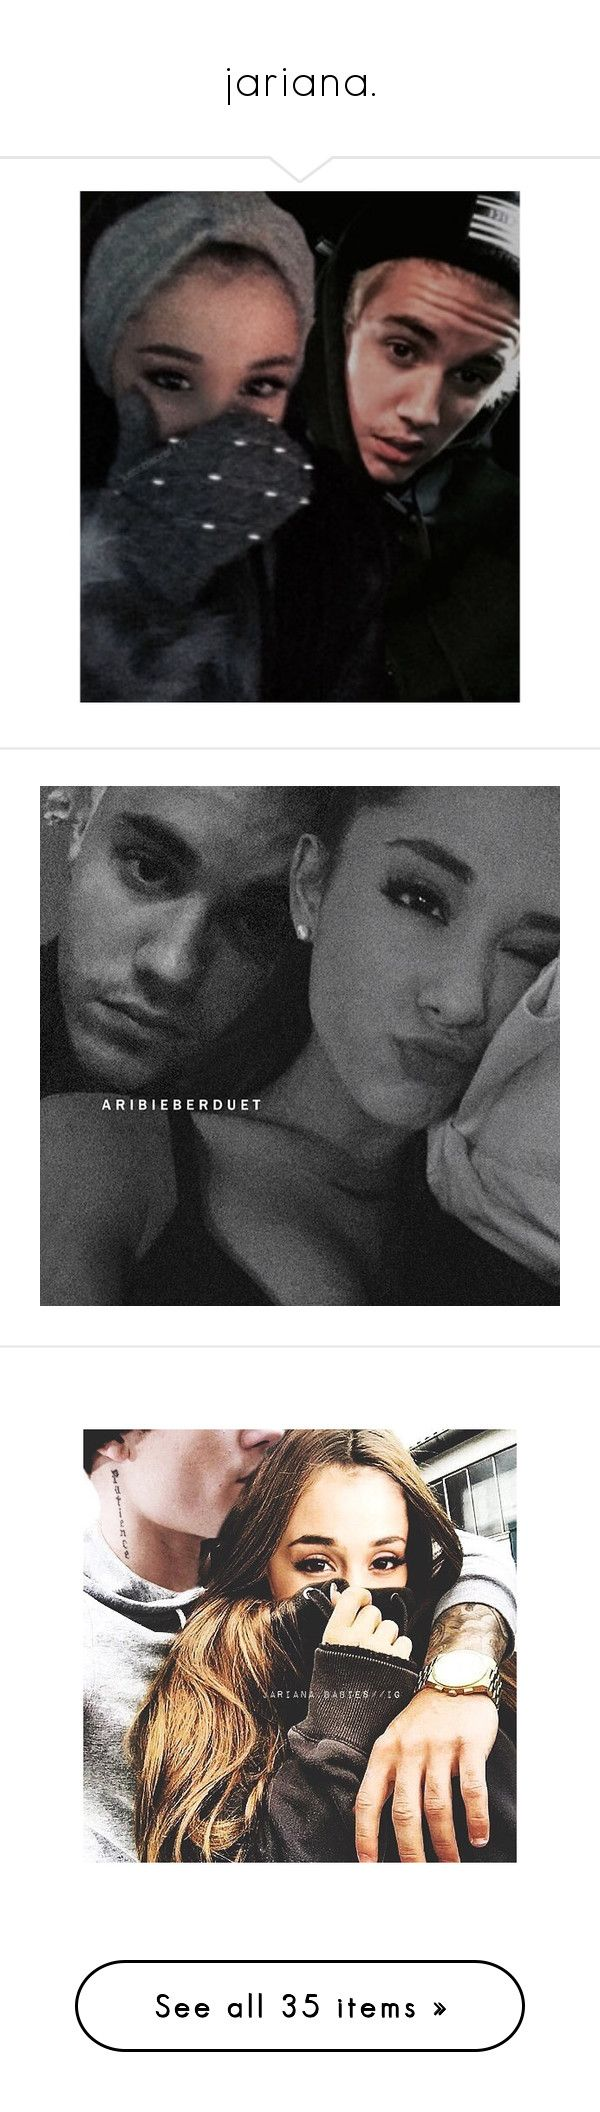 """""""jariana."""" by arianuhan0nn ❤ liked on Polyvore featuring ariana grande, jariana, ariana, ariana manips, justin bieber, justin & ariana, pictures and manips"""